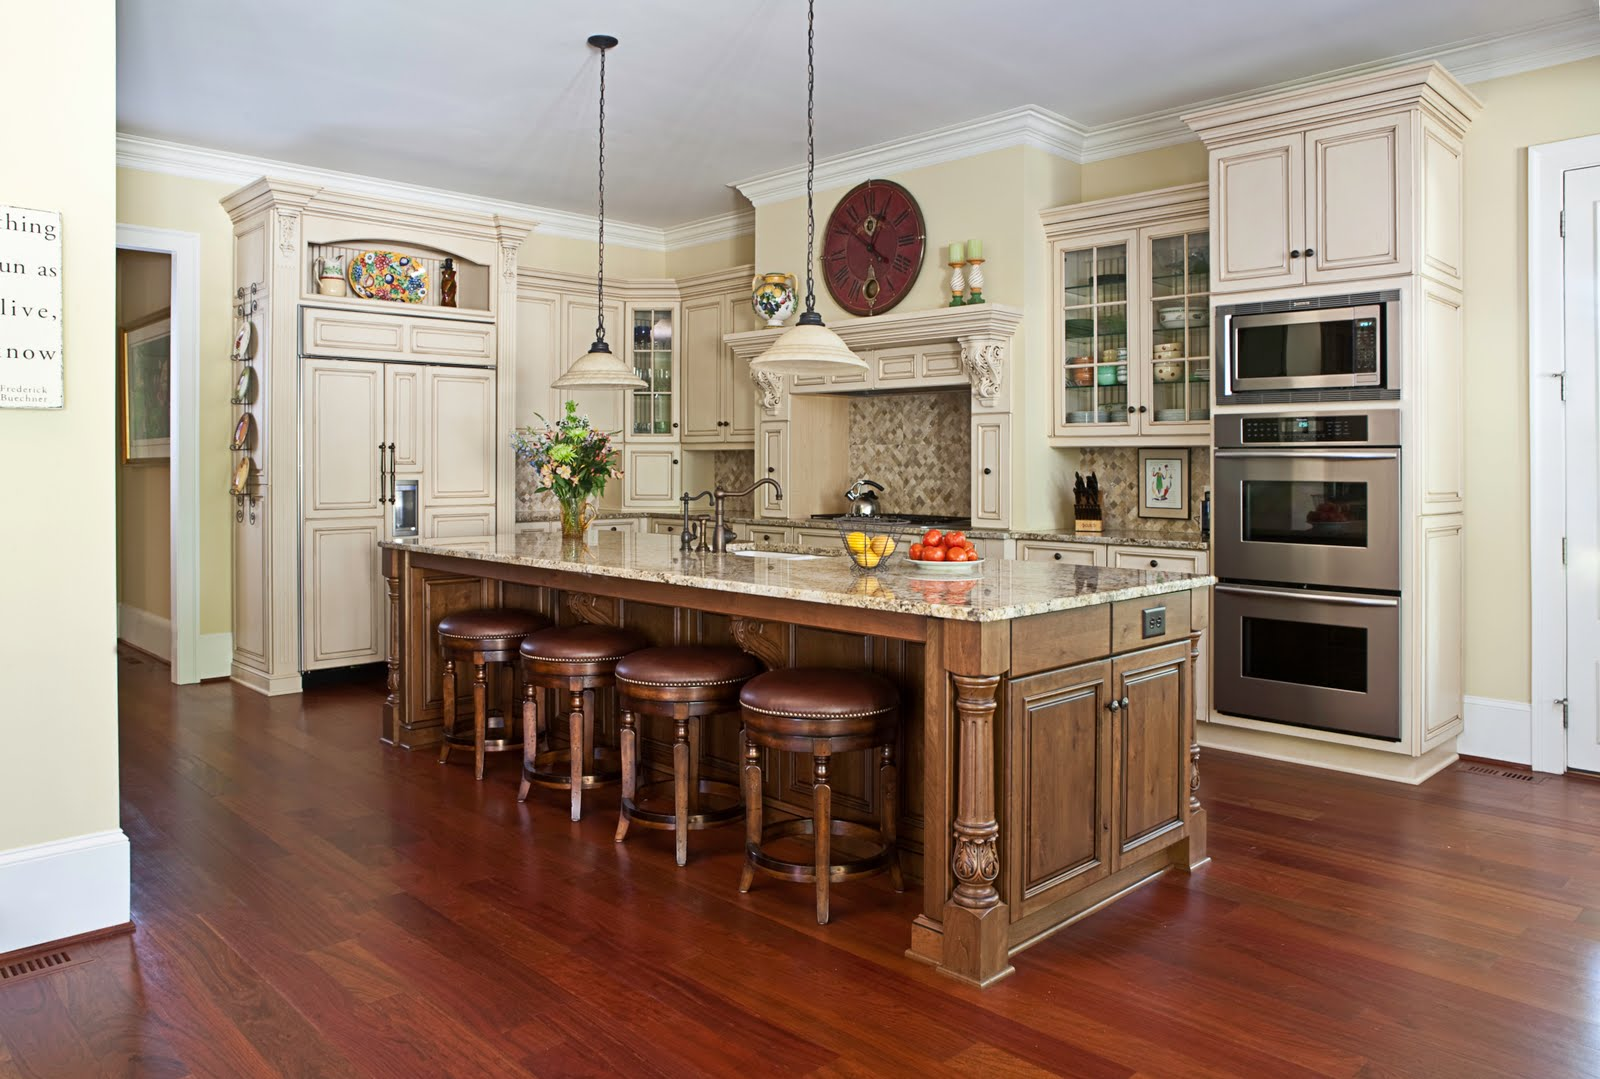 What Height Should a Kitchen Island Be? | Cheryl Smith Associates ...